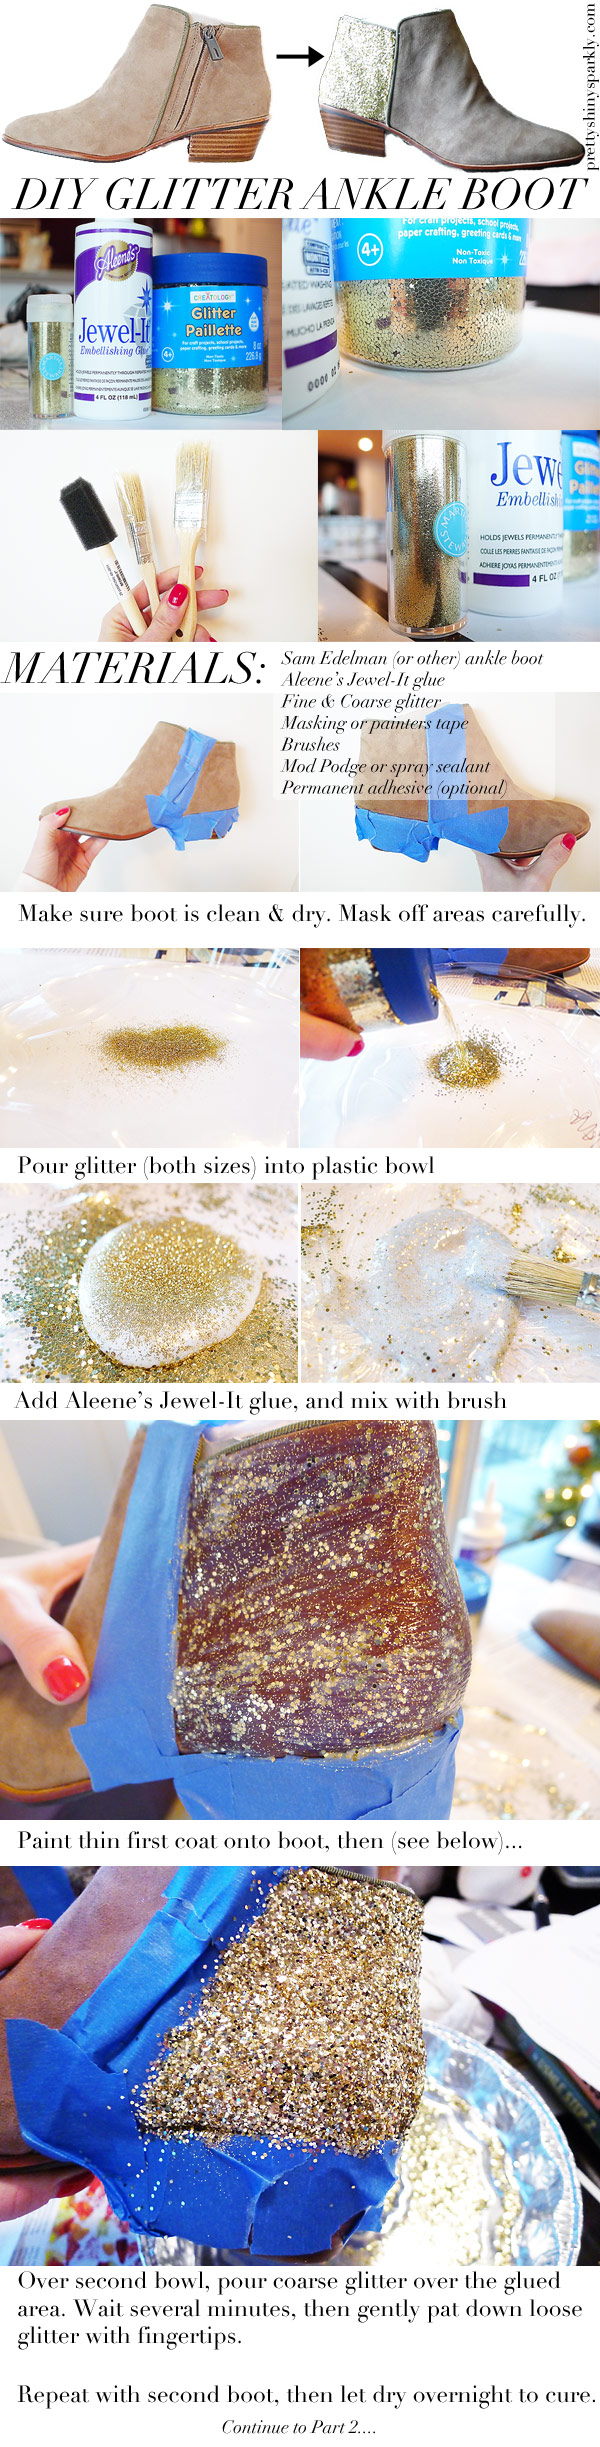 diy glitter ankle boot instructions part 1